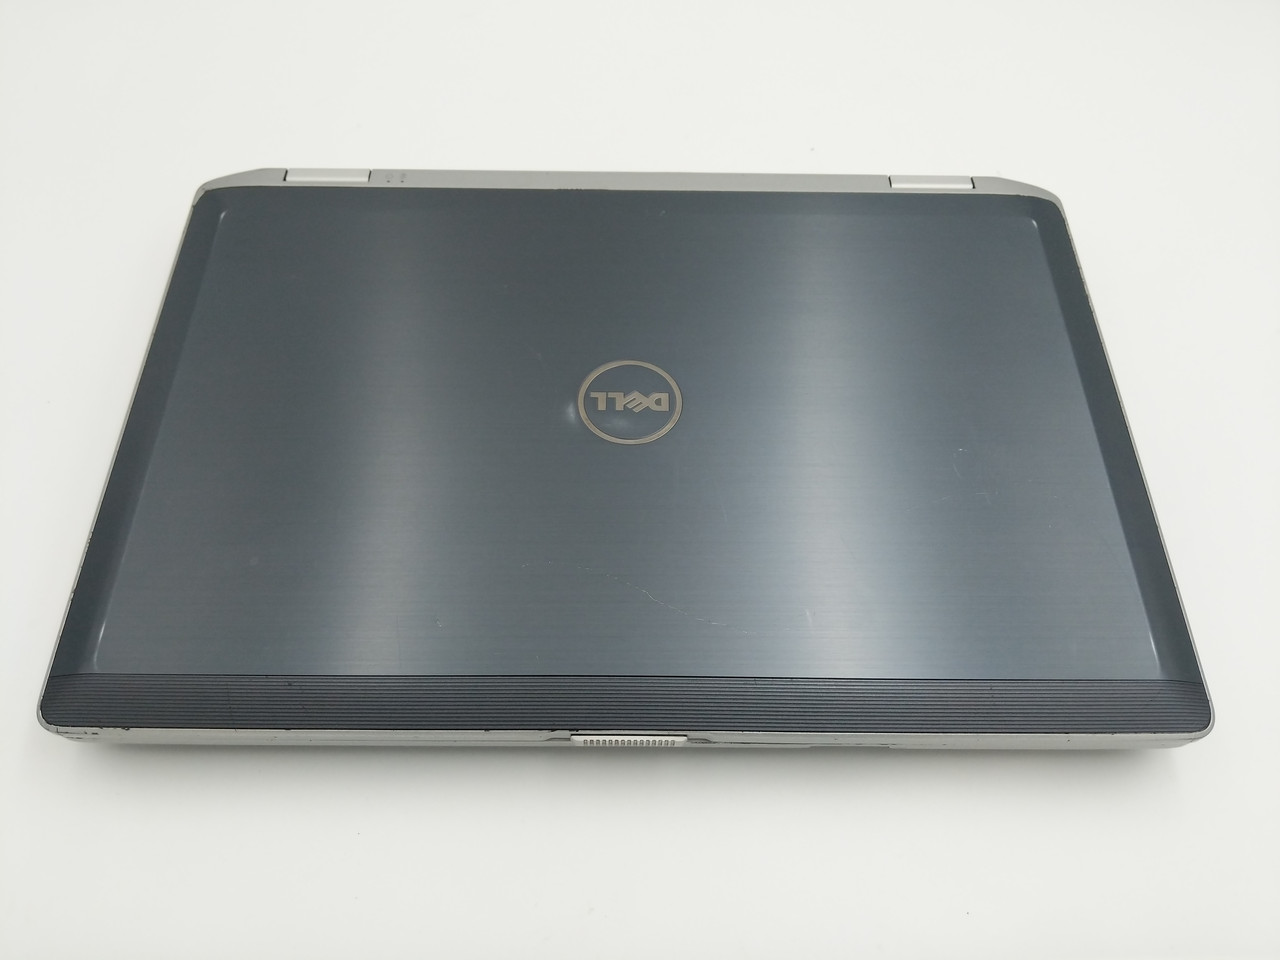 Б/У Dell Latitude E6520 15.6″ i5-2520M /DDR3 8 Gb /SSD 240 Gb / Нет в наличии 2